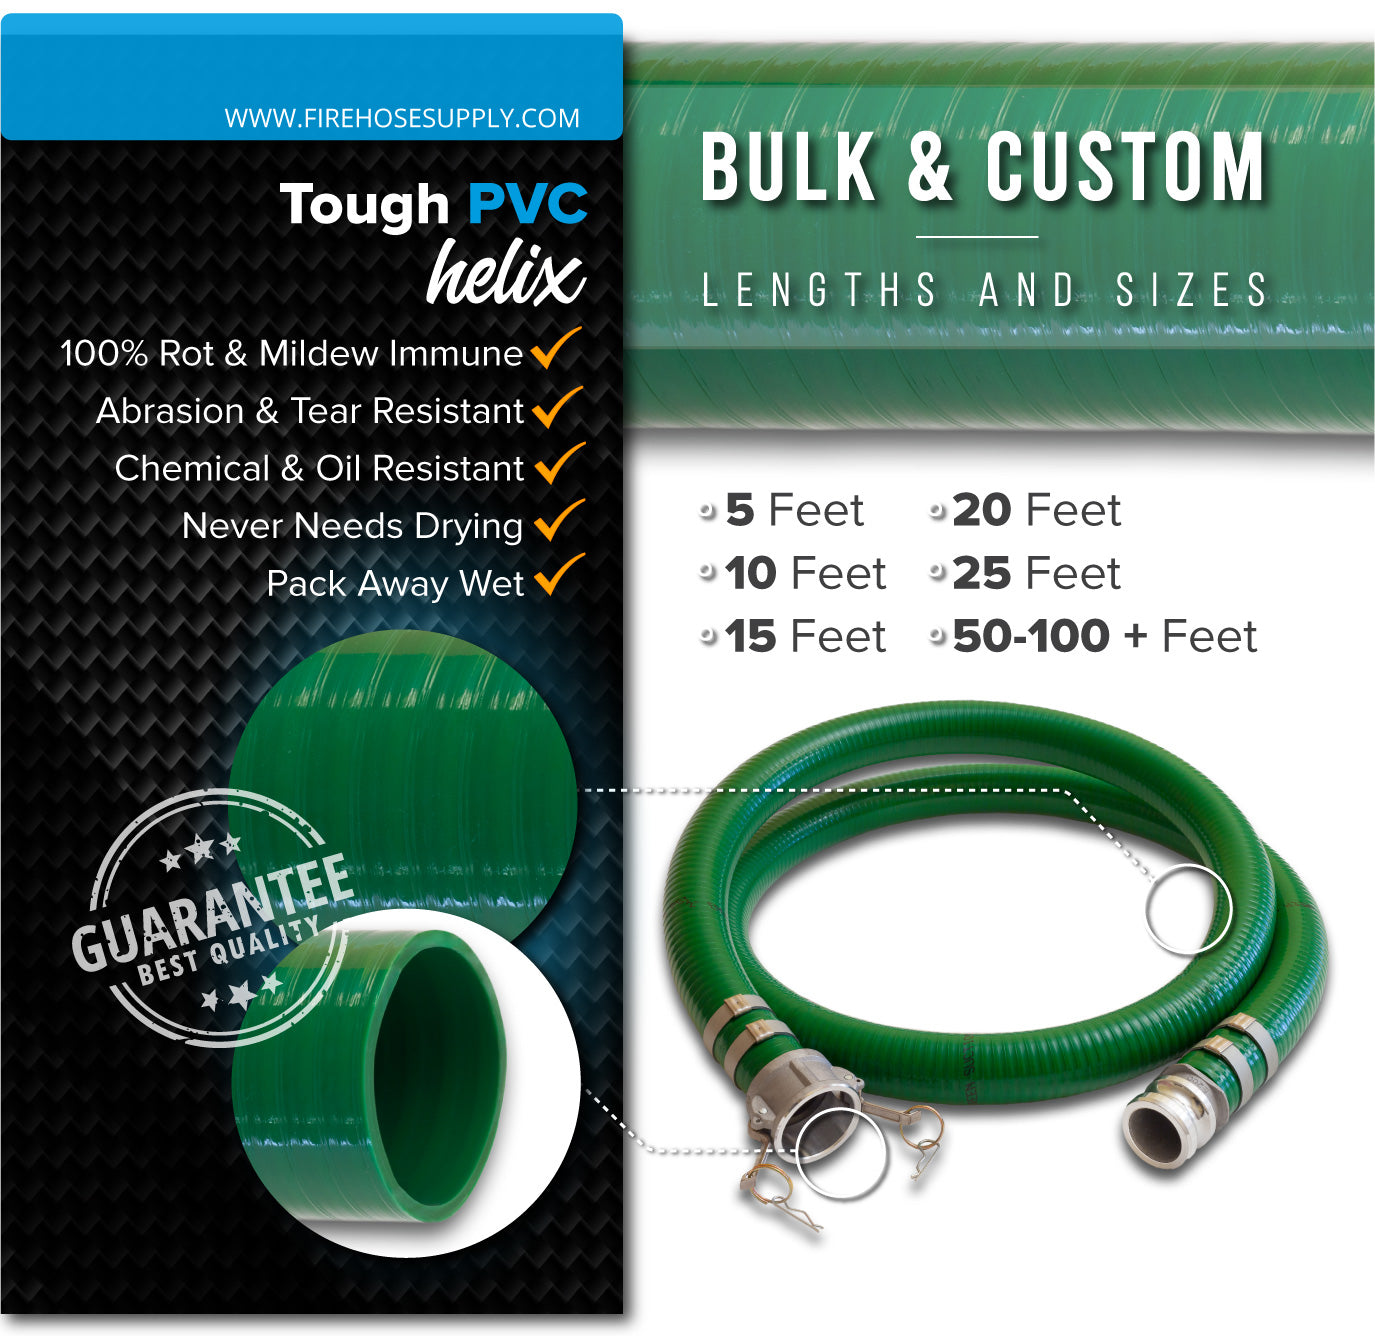 6 Inch Camlock Female x Male Green Suction Hose PVC Materials